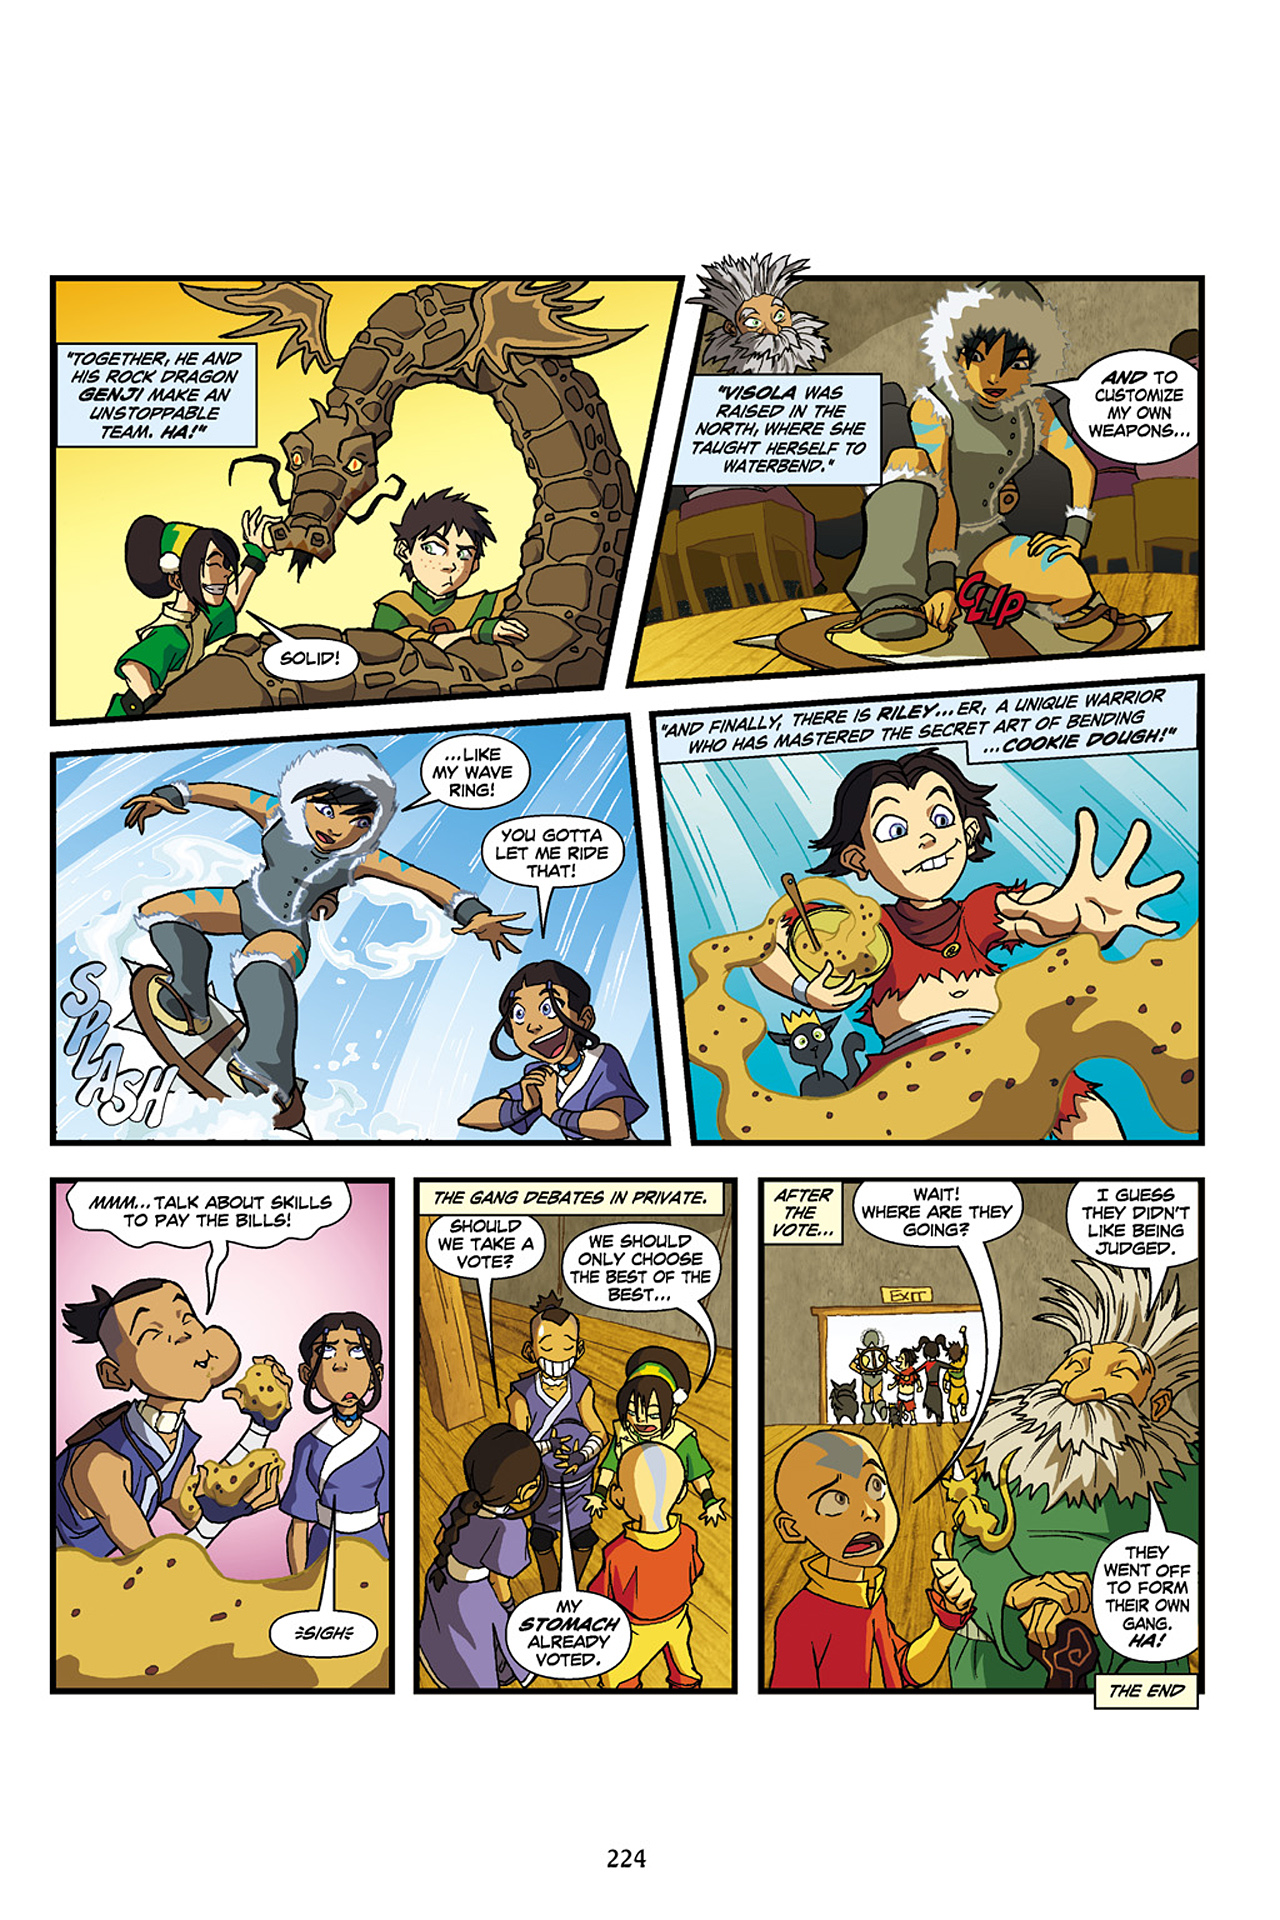 Nickelodeon Avatar: The Last Airbender - The Lost Adventures chap full pic 225